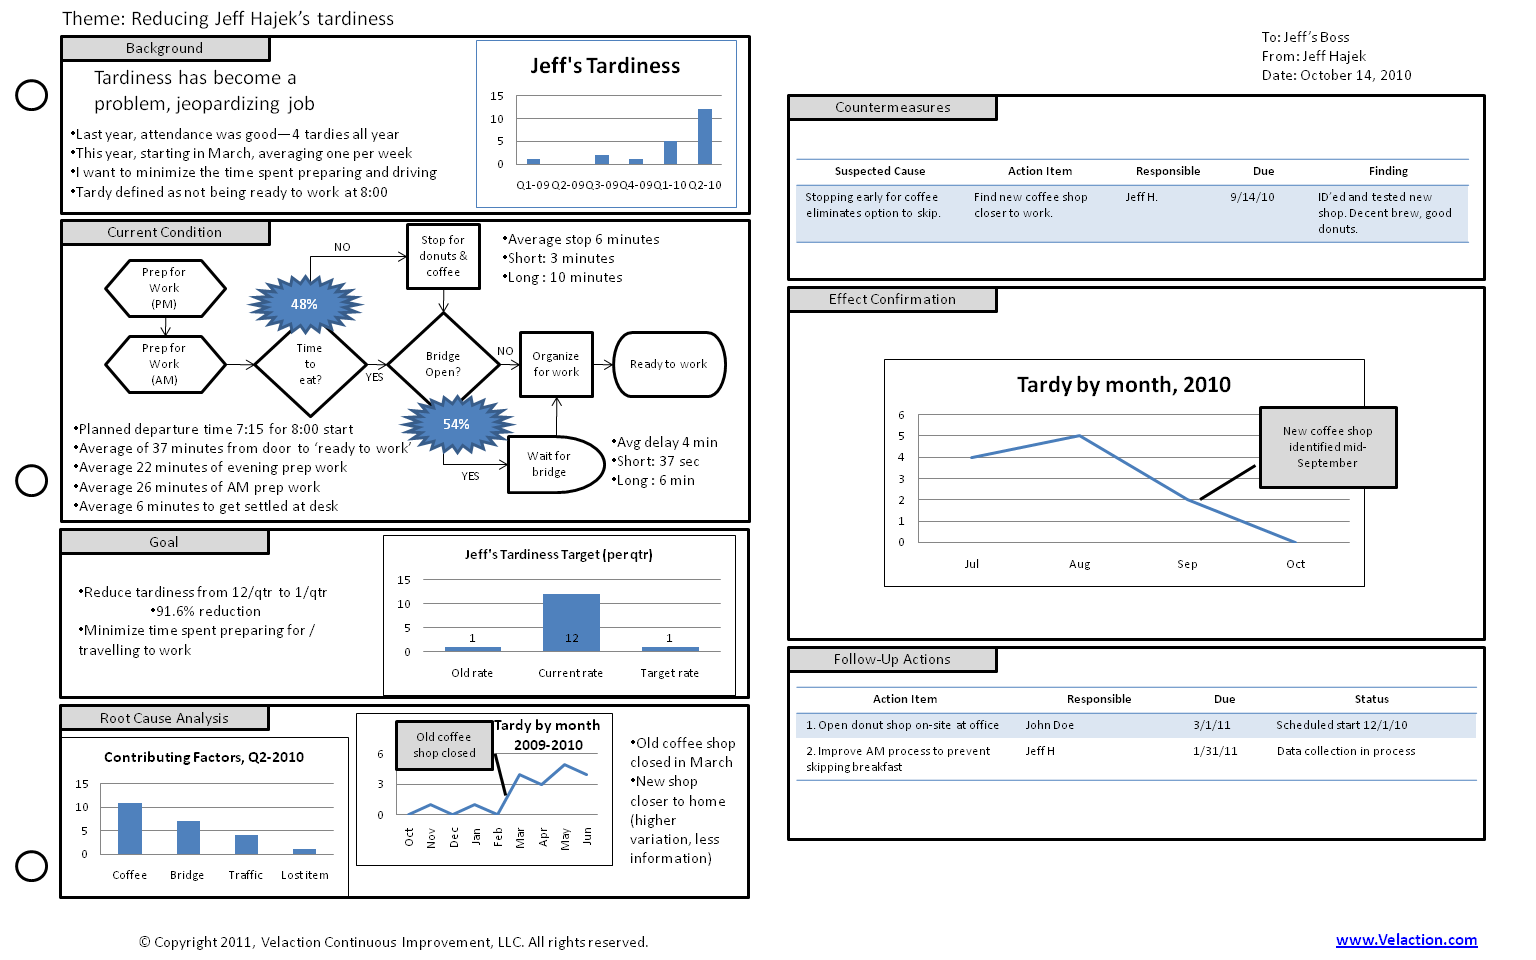 a3 template | one of our many free lean forms, Modern powerpoint